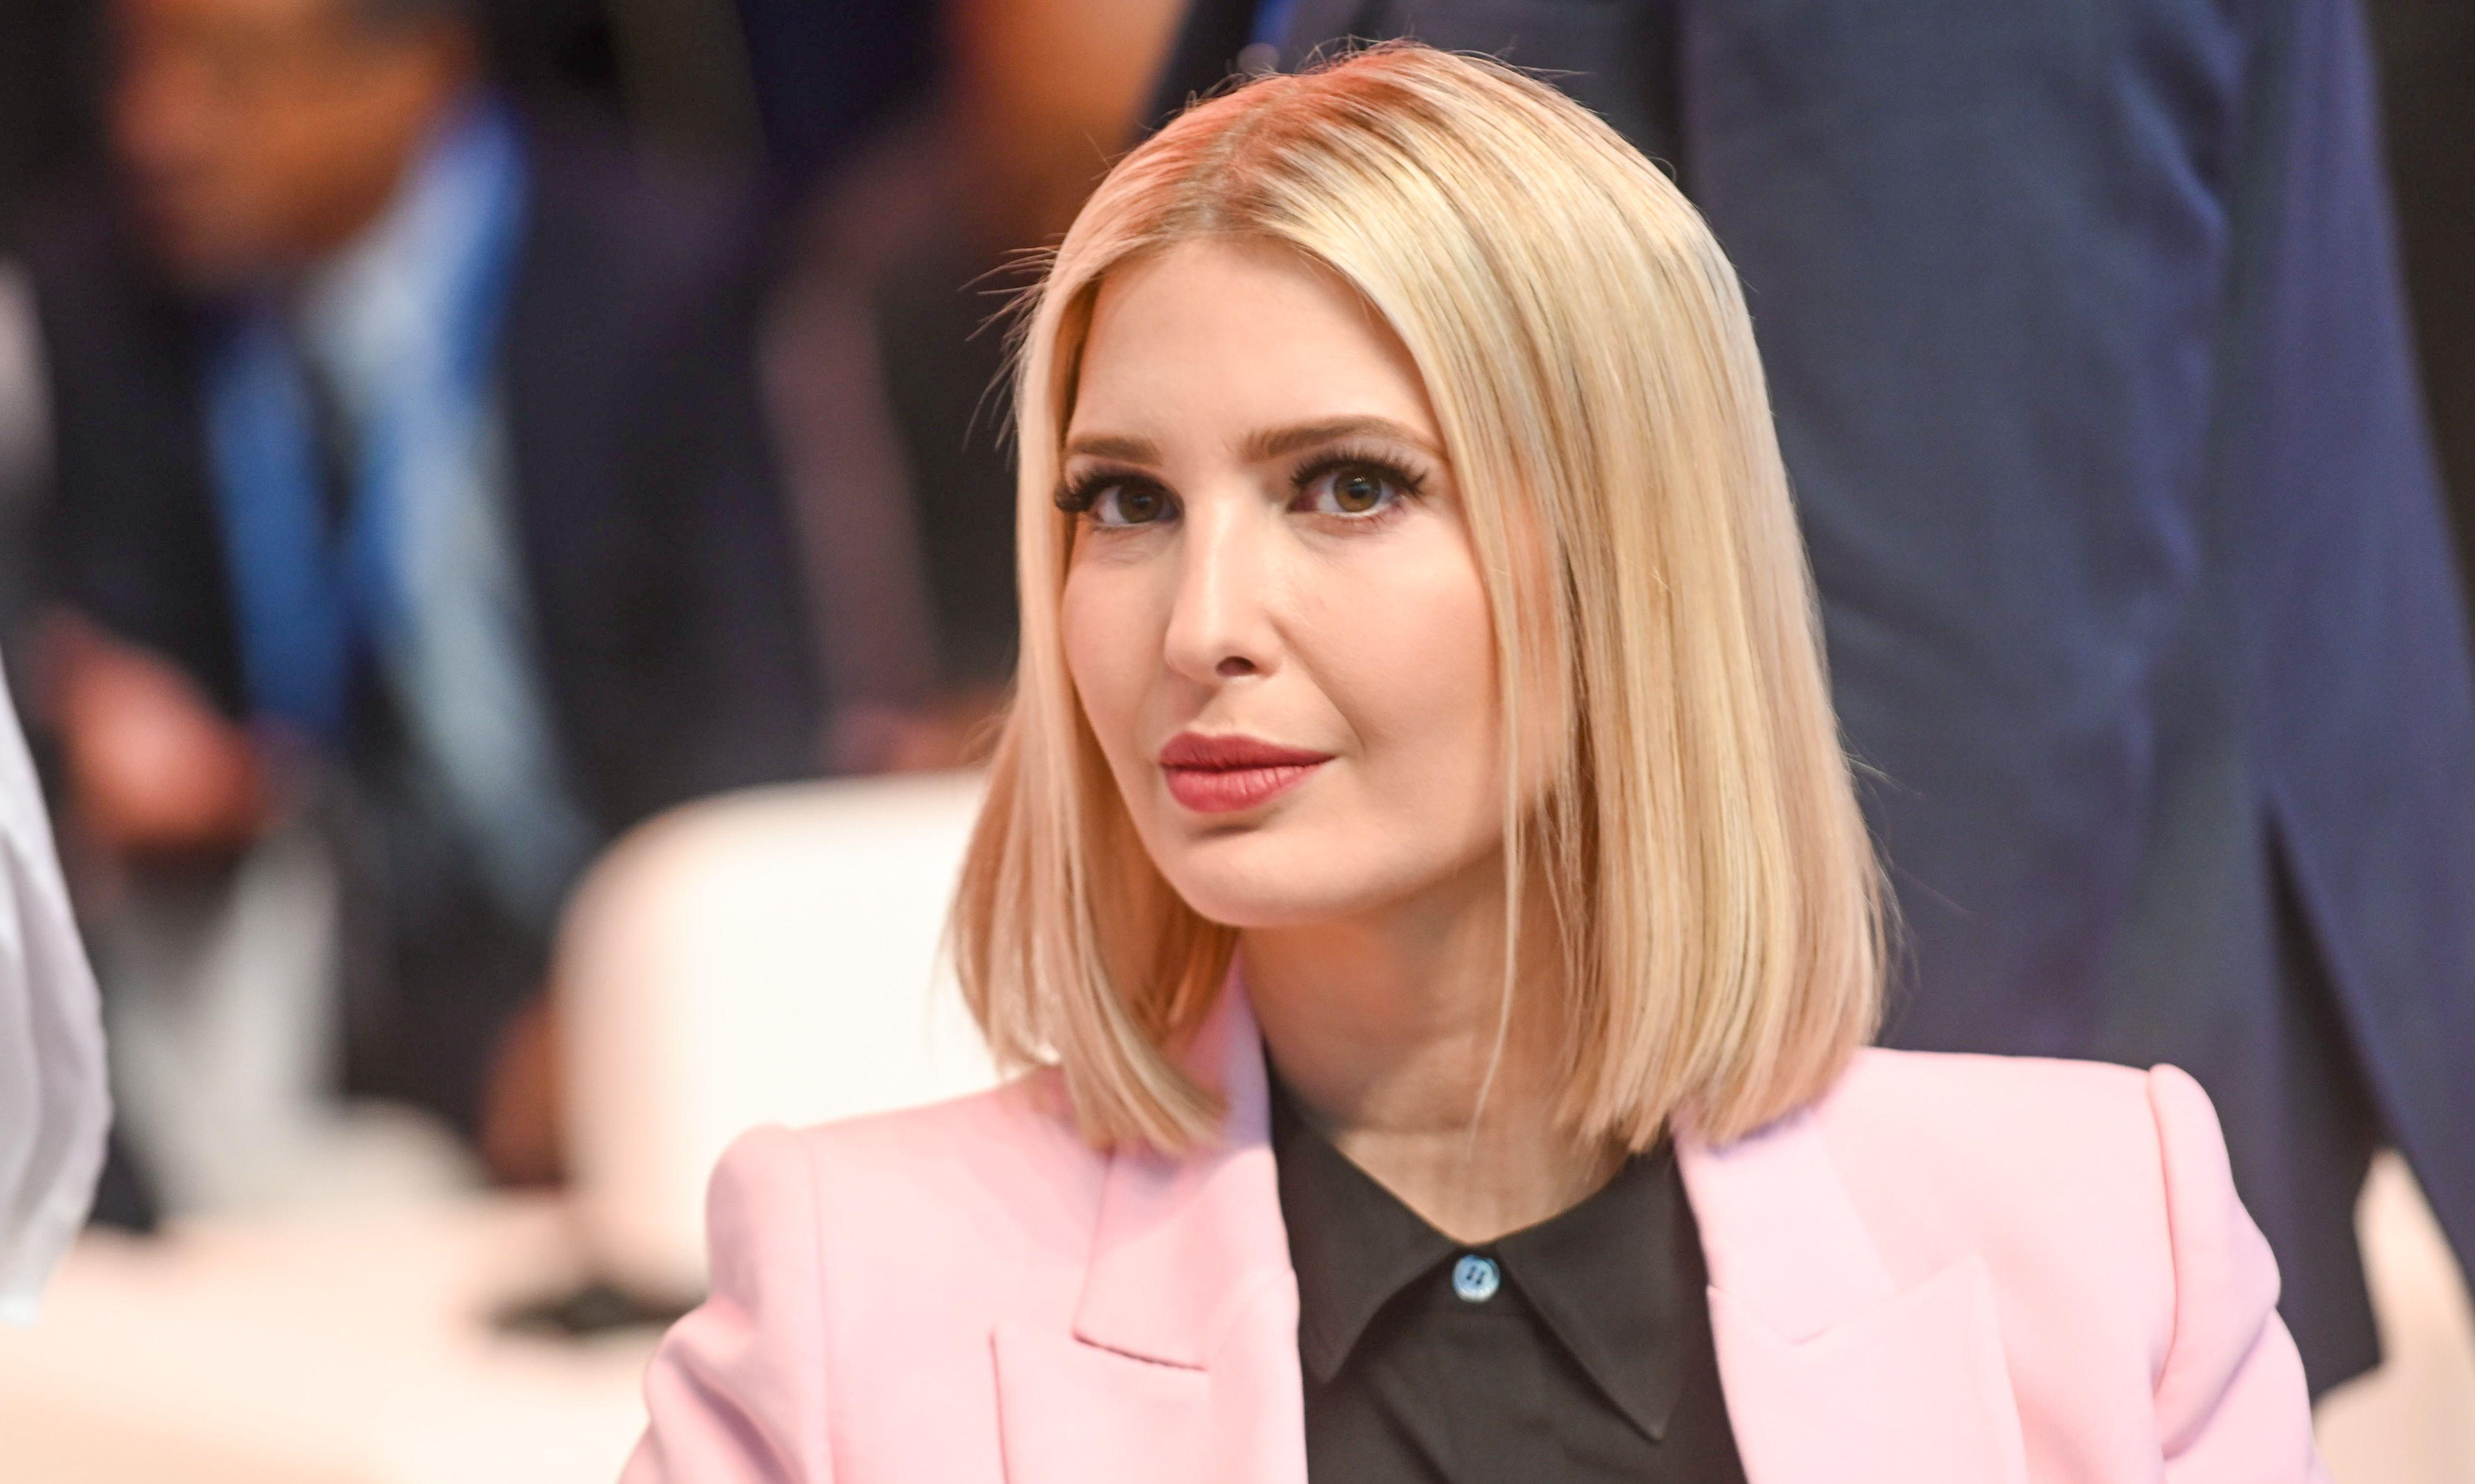 'What an insult': CES names Ivanka Trump as keynote speaker